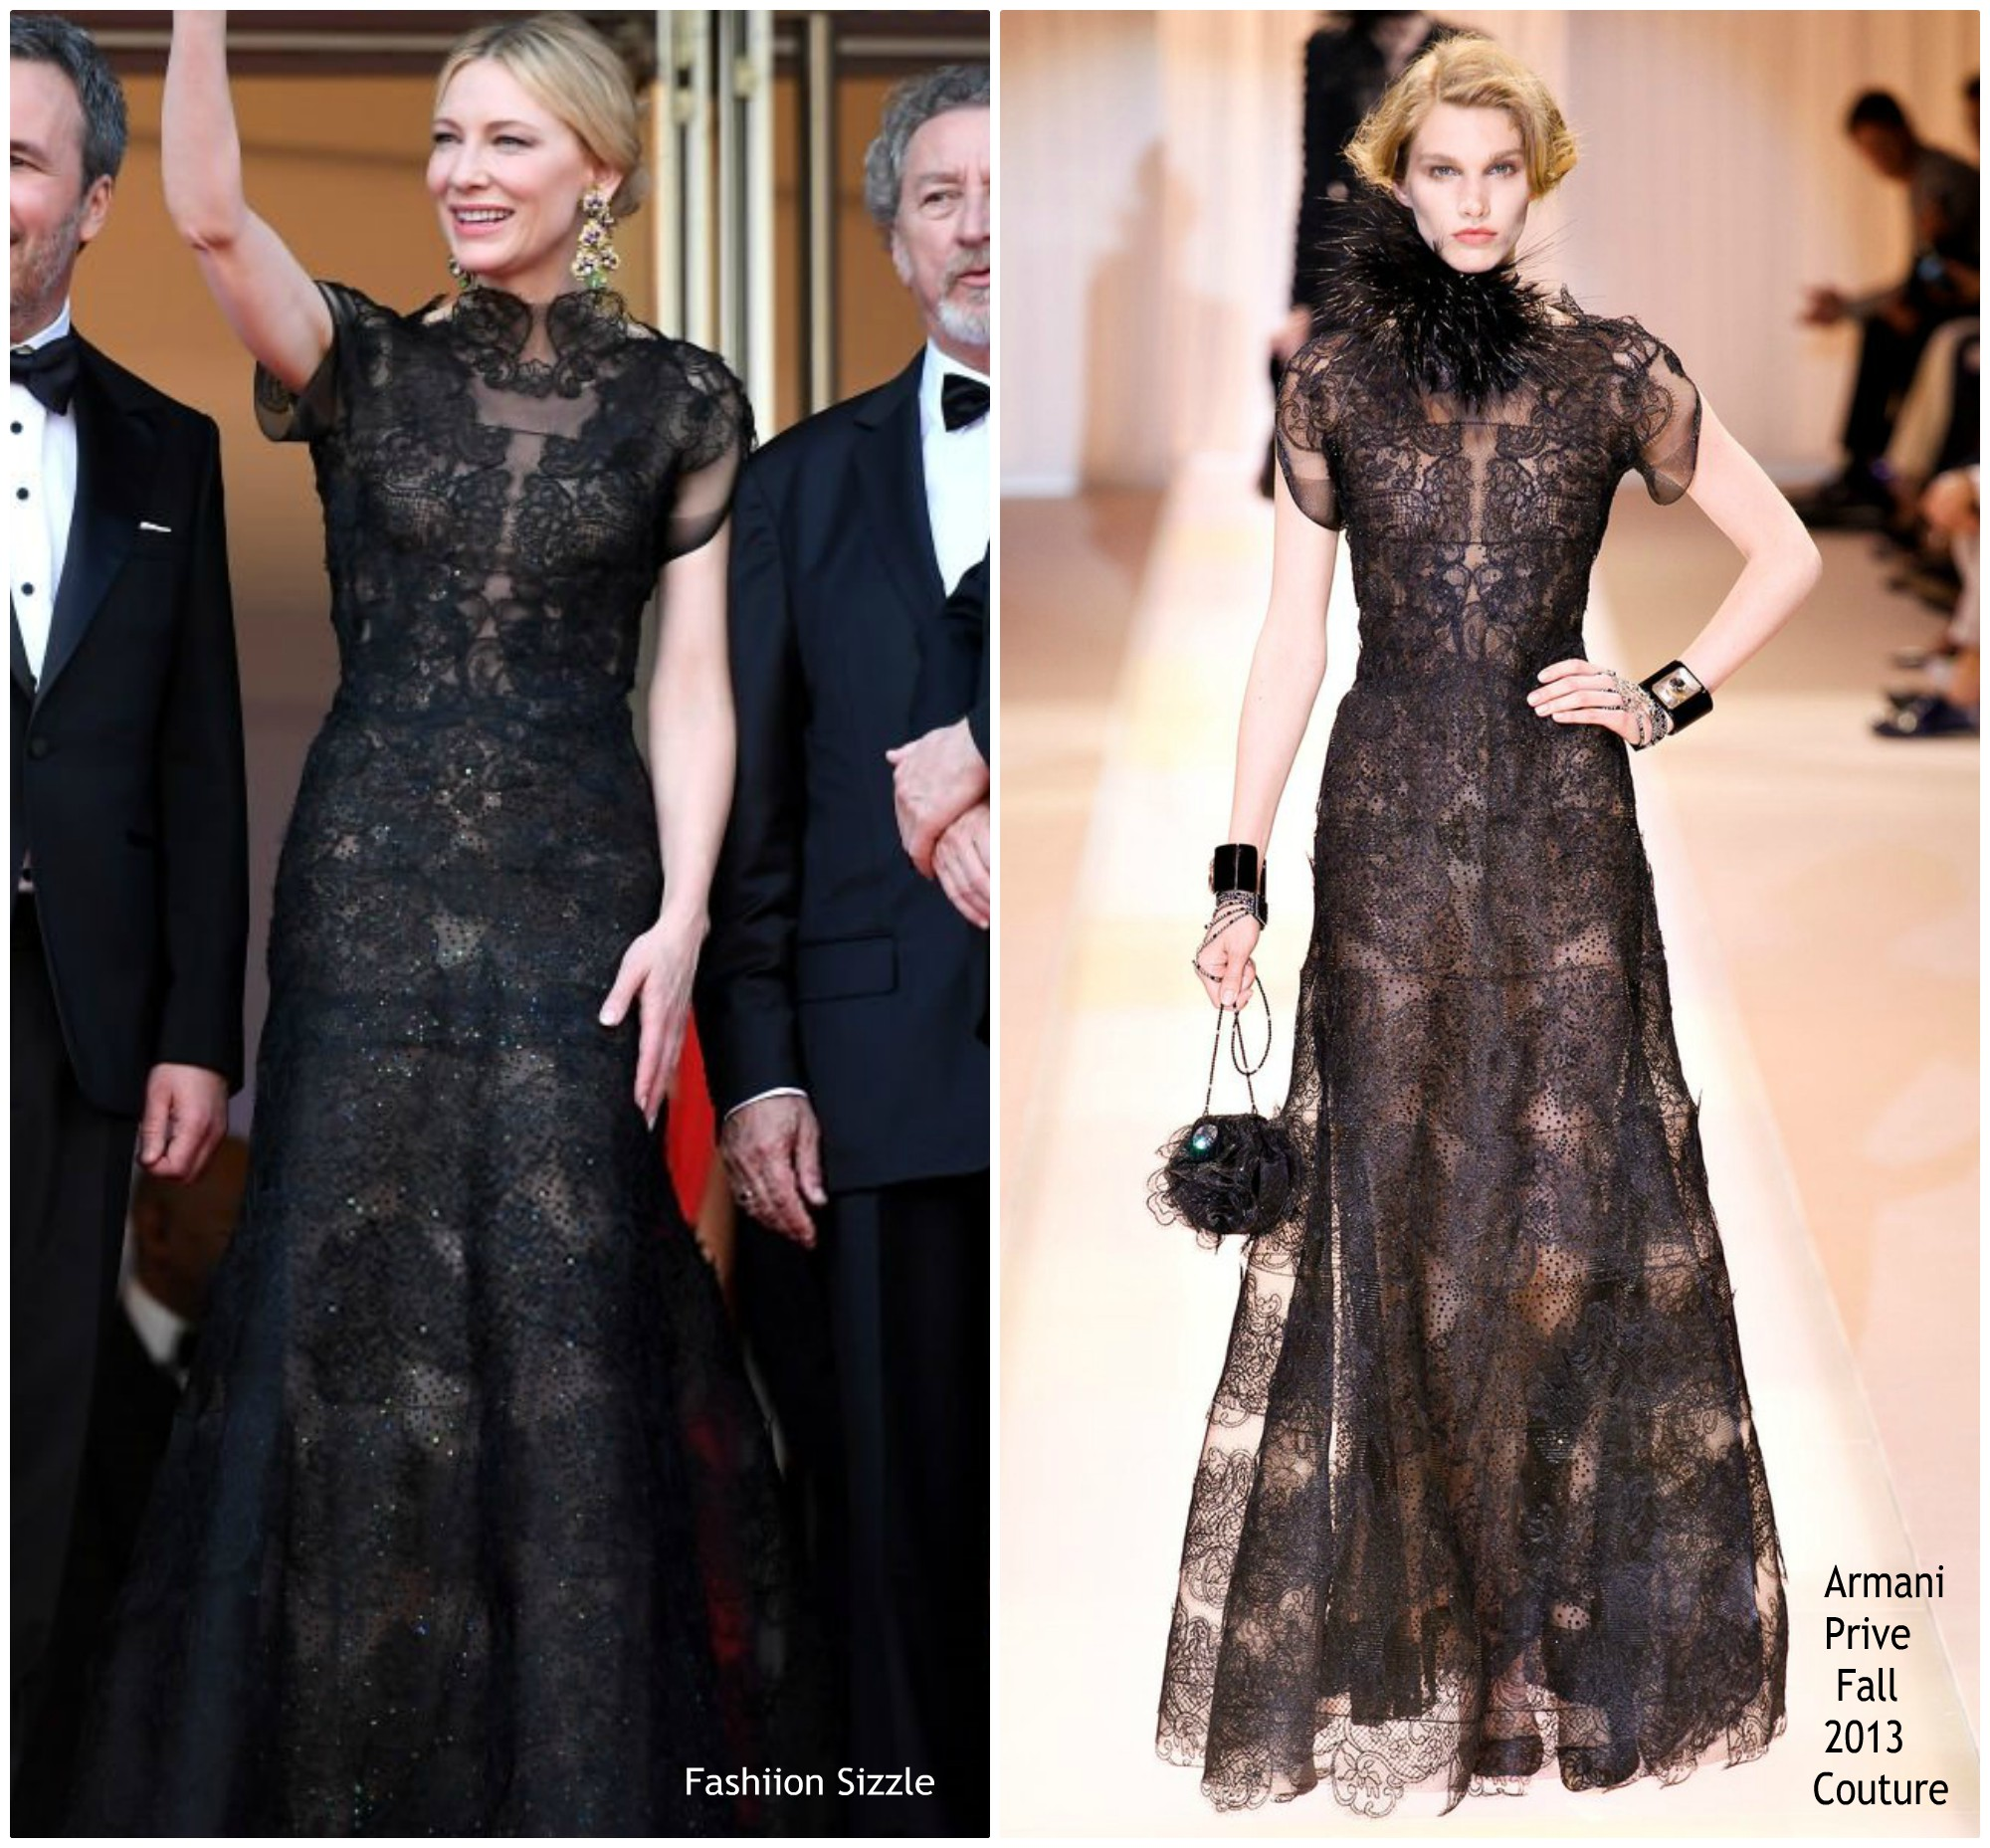 cate-blanchett-in-armani-prive-everybody-knows-cannes-film-festival-screening